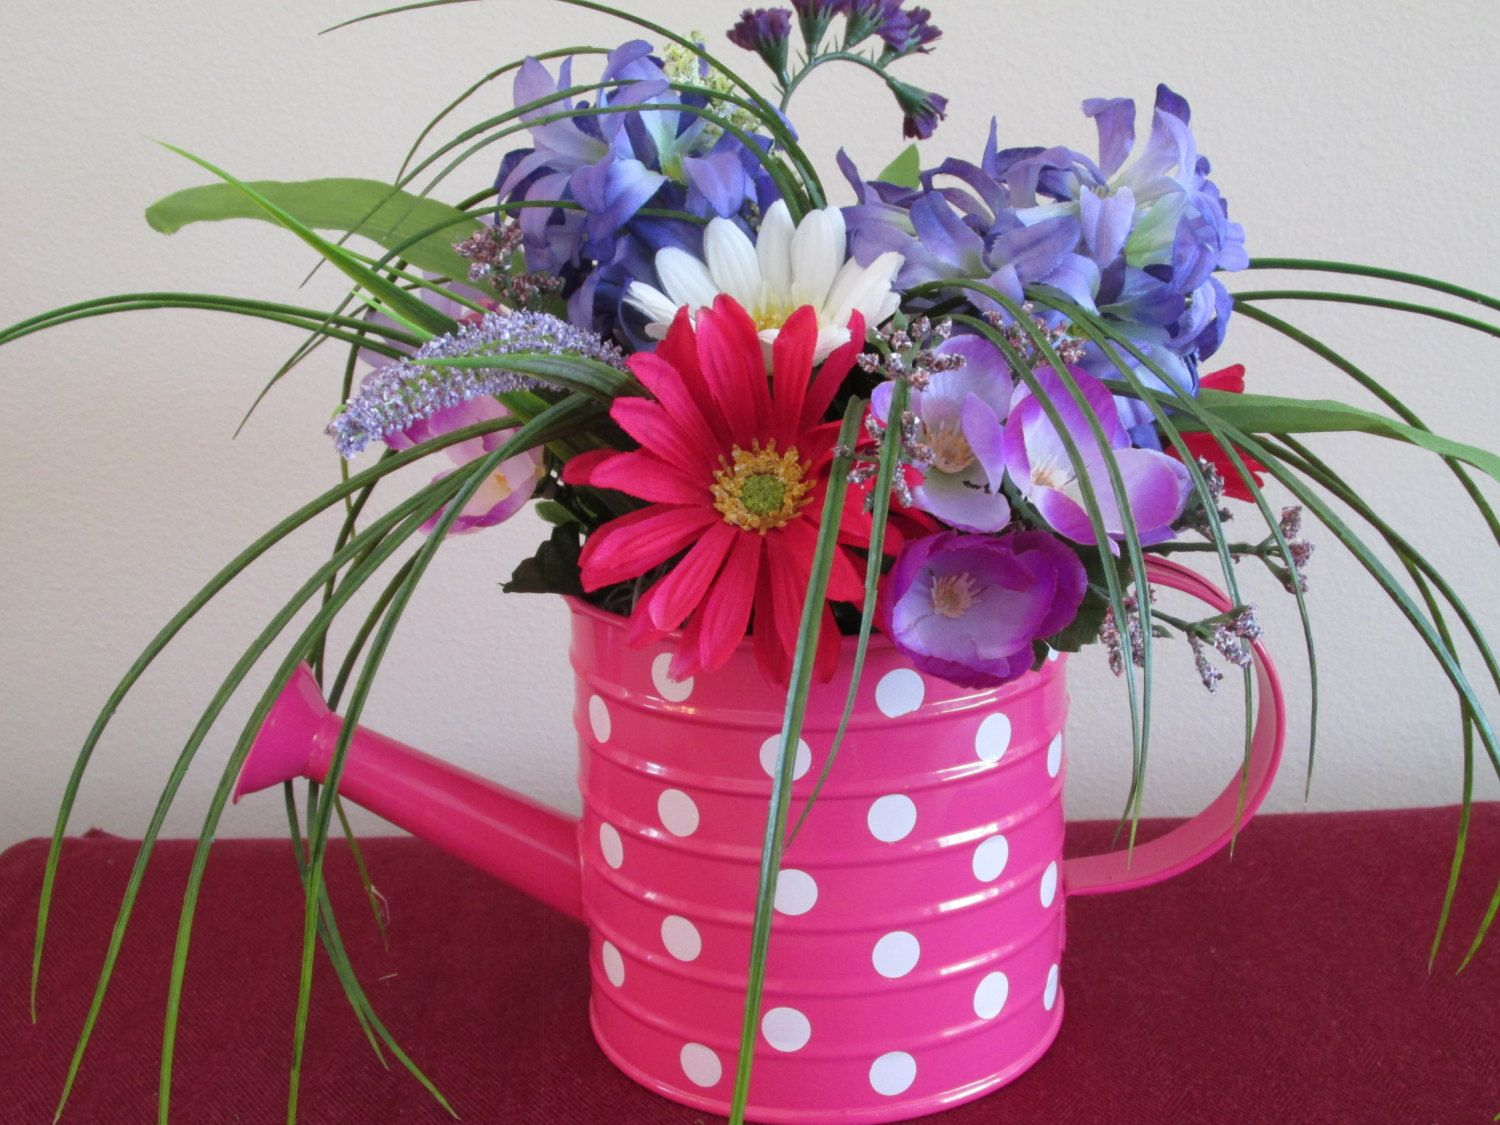 Summer flower arrangement watering can pink lilacs daisy items similar to summer flower arrangement watering can pink lilacs daisy gerbera tall grasse fillers spring flowers silk floral pokka dot izmirmasajfo Choice Image